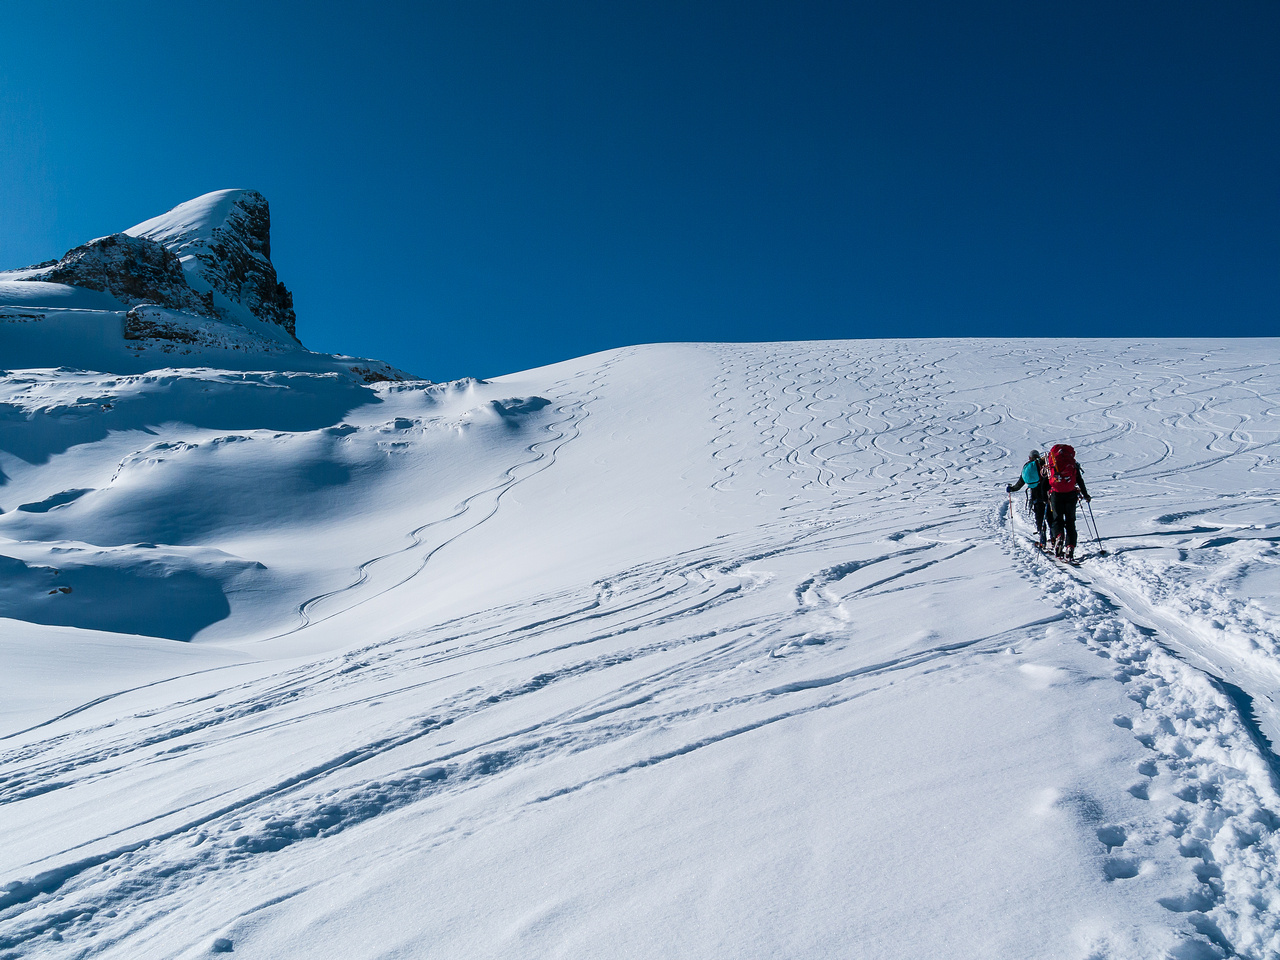 TJ and Ben follow a well-worn skin track up the headwall above the Bow Hut that gives access to the Wapta Icefield.